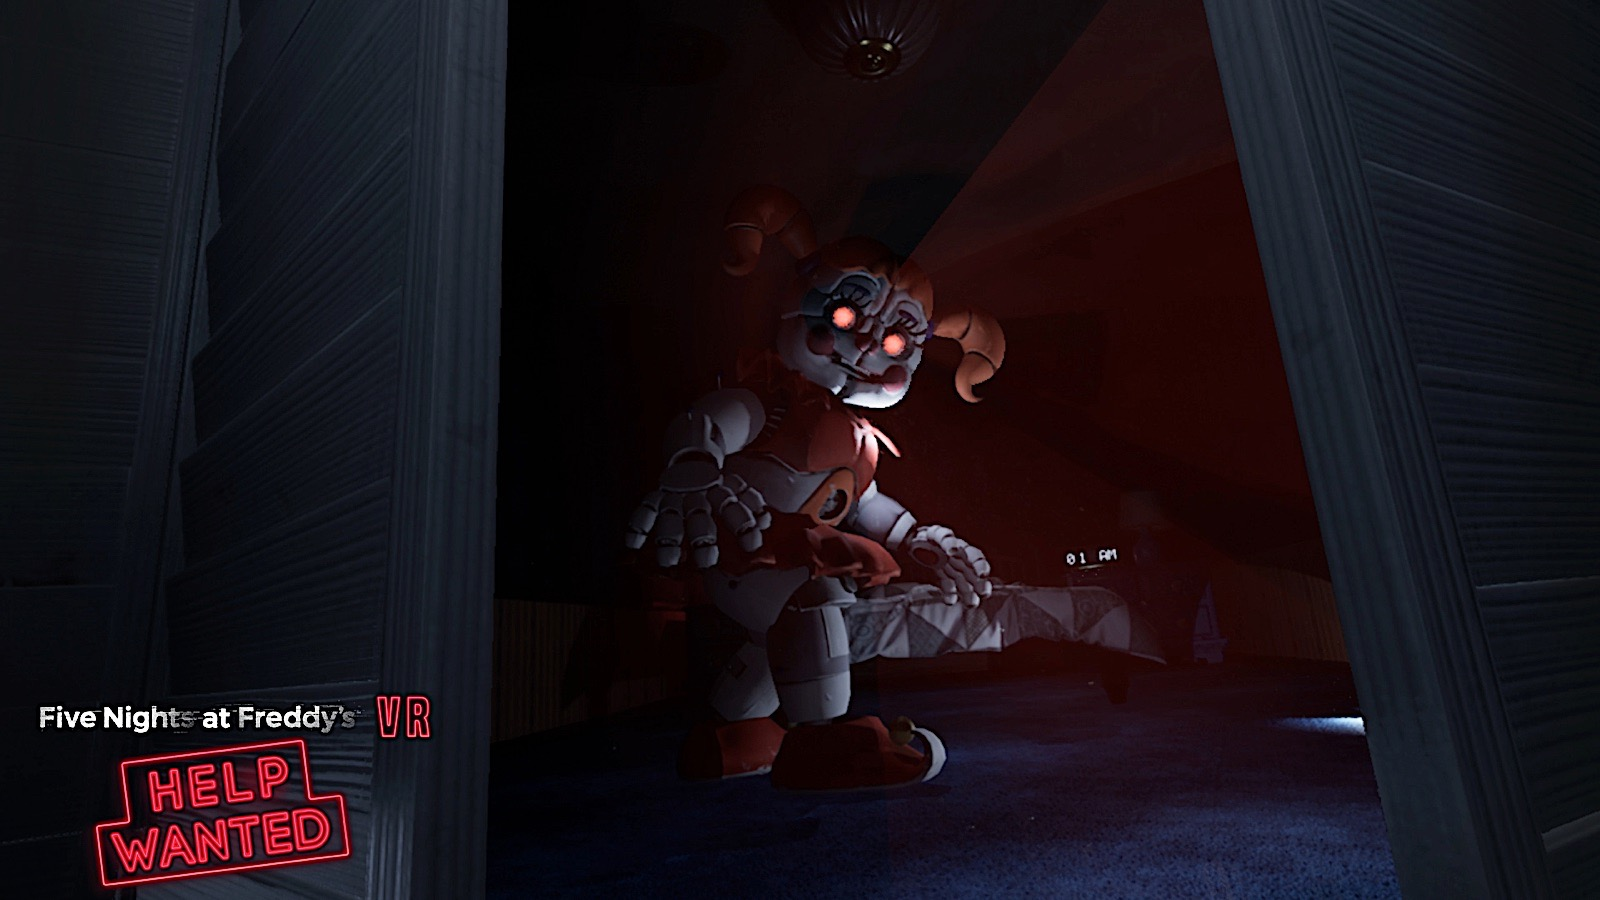 Five Nights at Freddy's' is even more creepy in VR